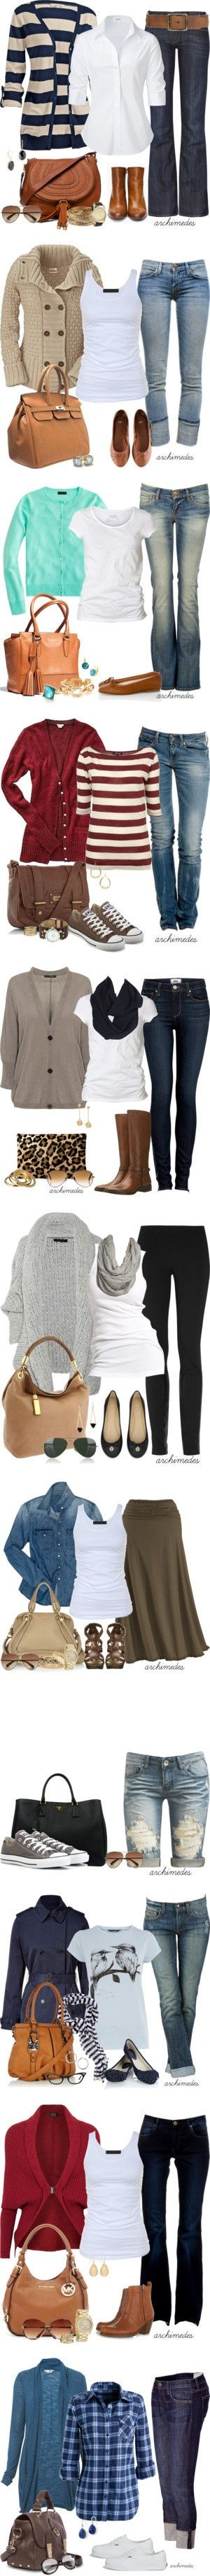 Cute layered looks